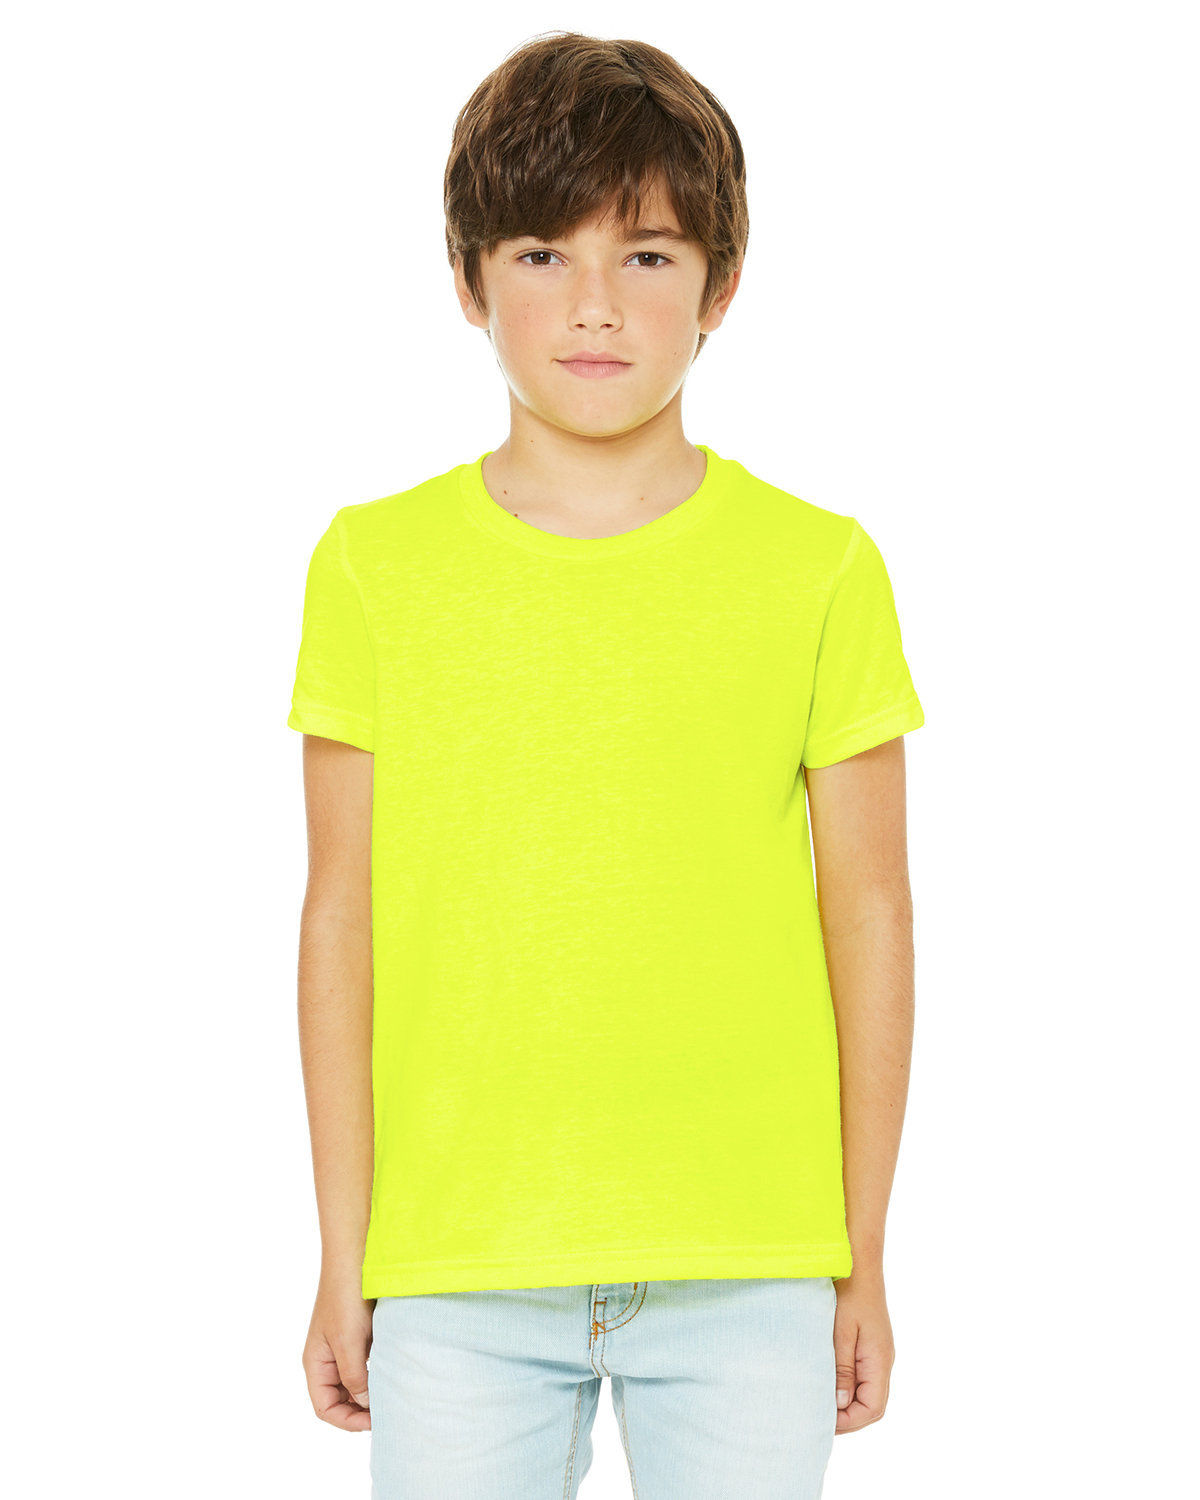 Bella + Canvas Youth Jersey T-Shirt NEON YELLOW